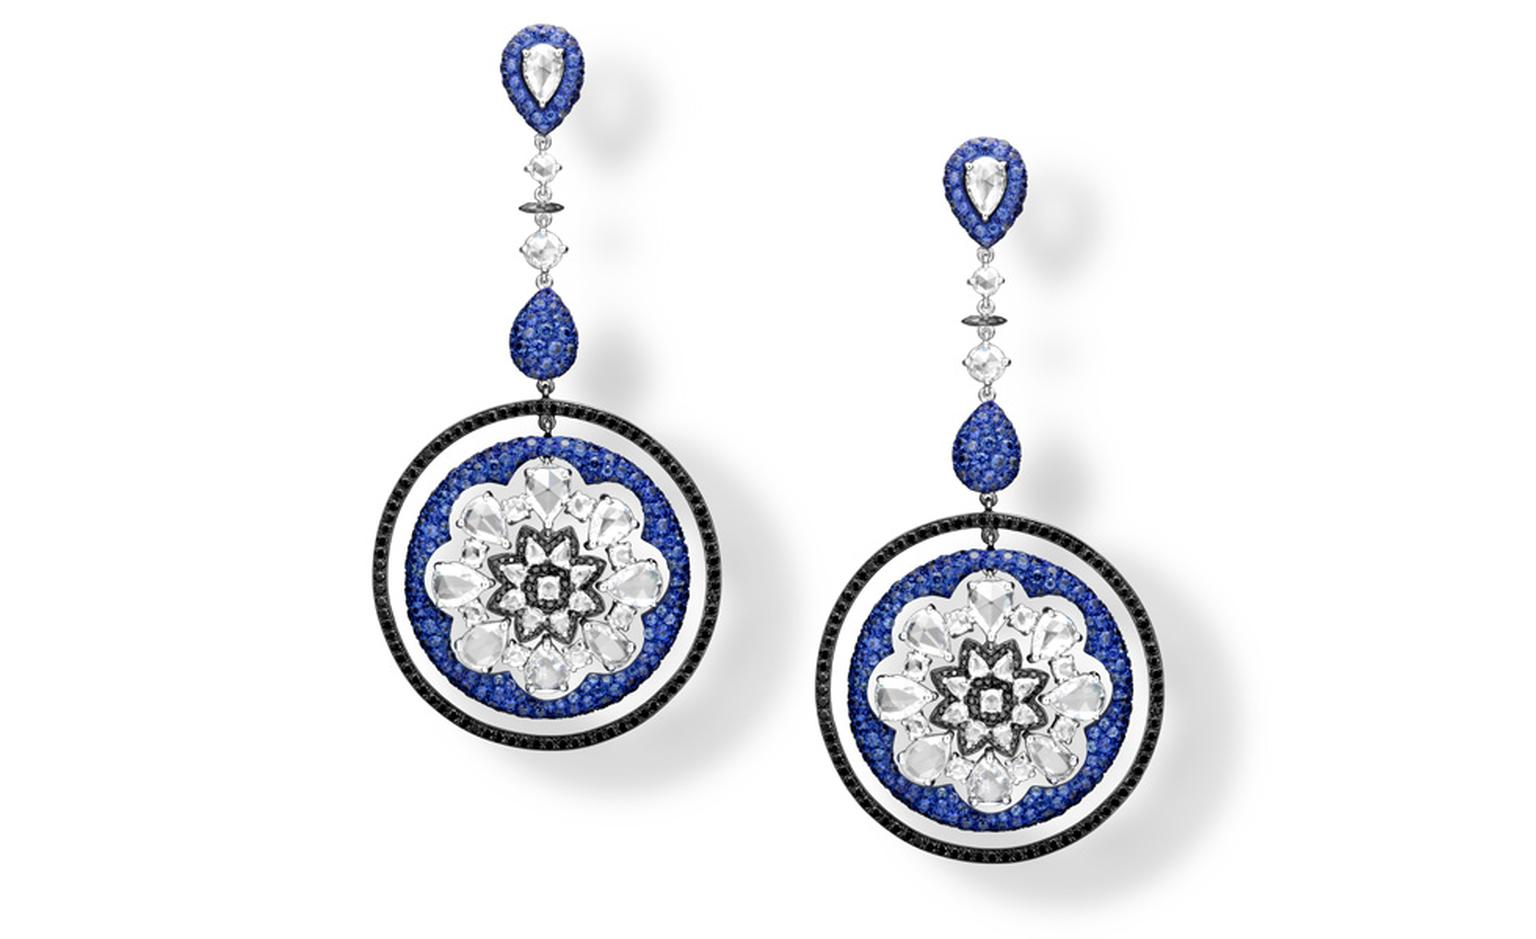 Dream Catcher earrings with sapphires and diamonds.